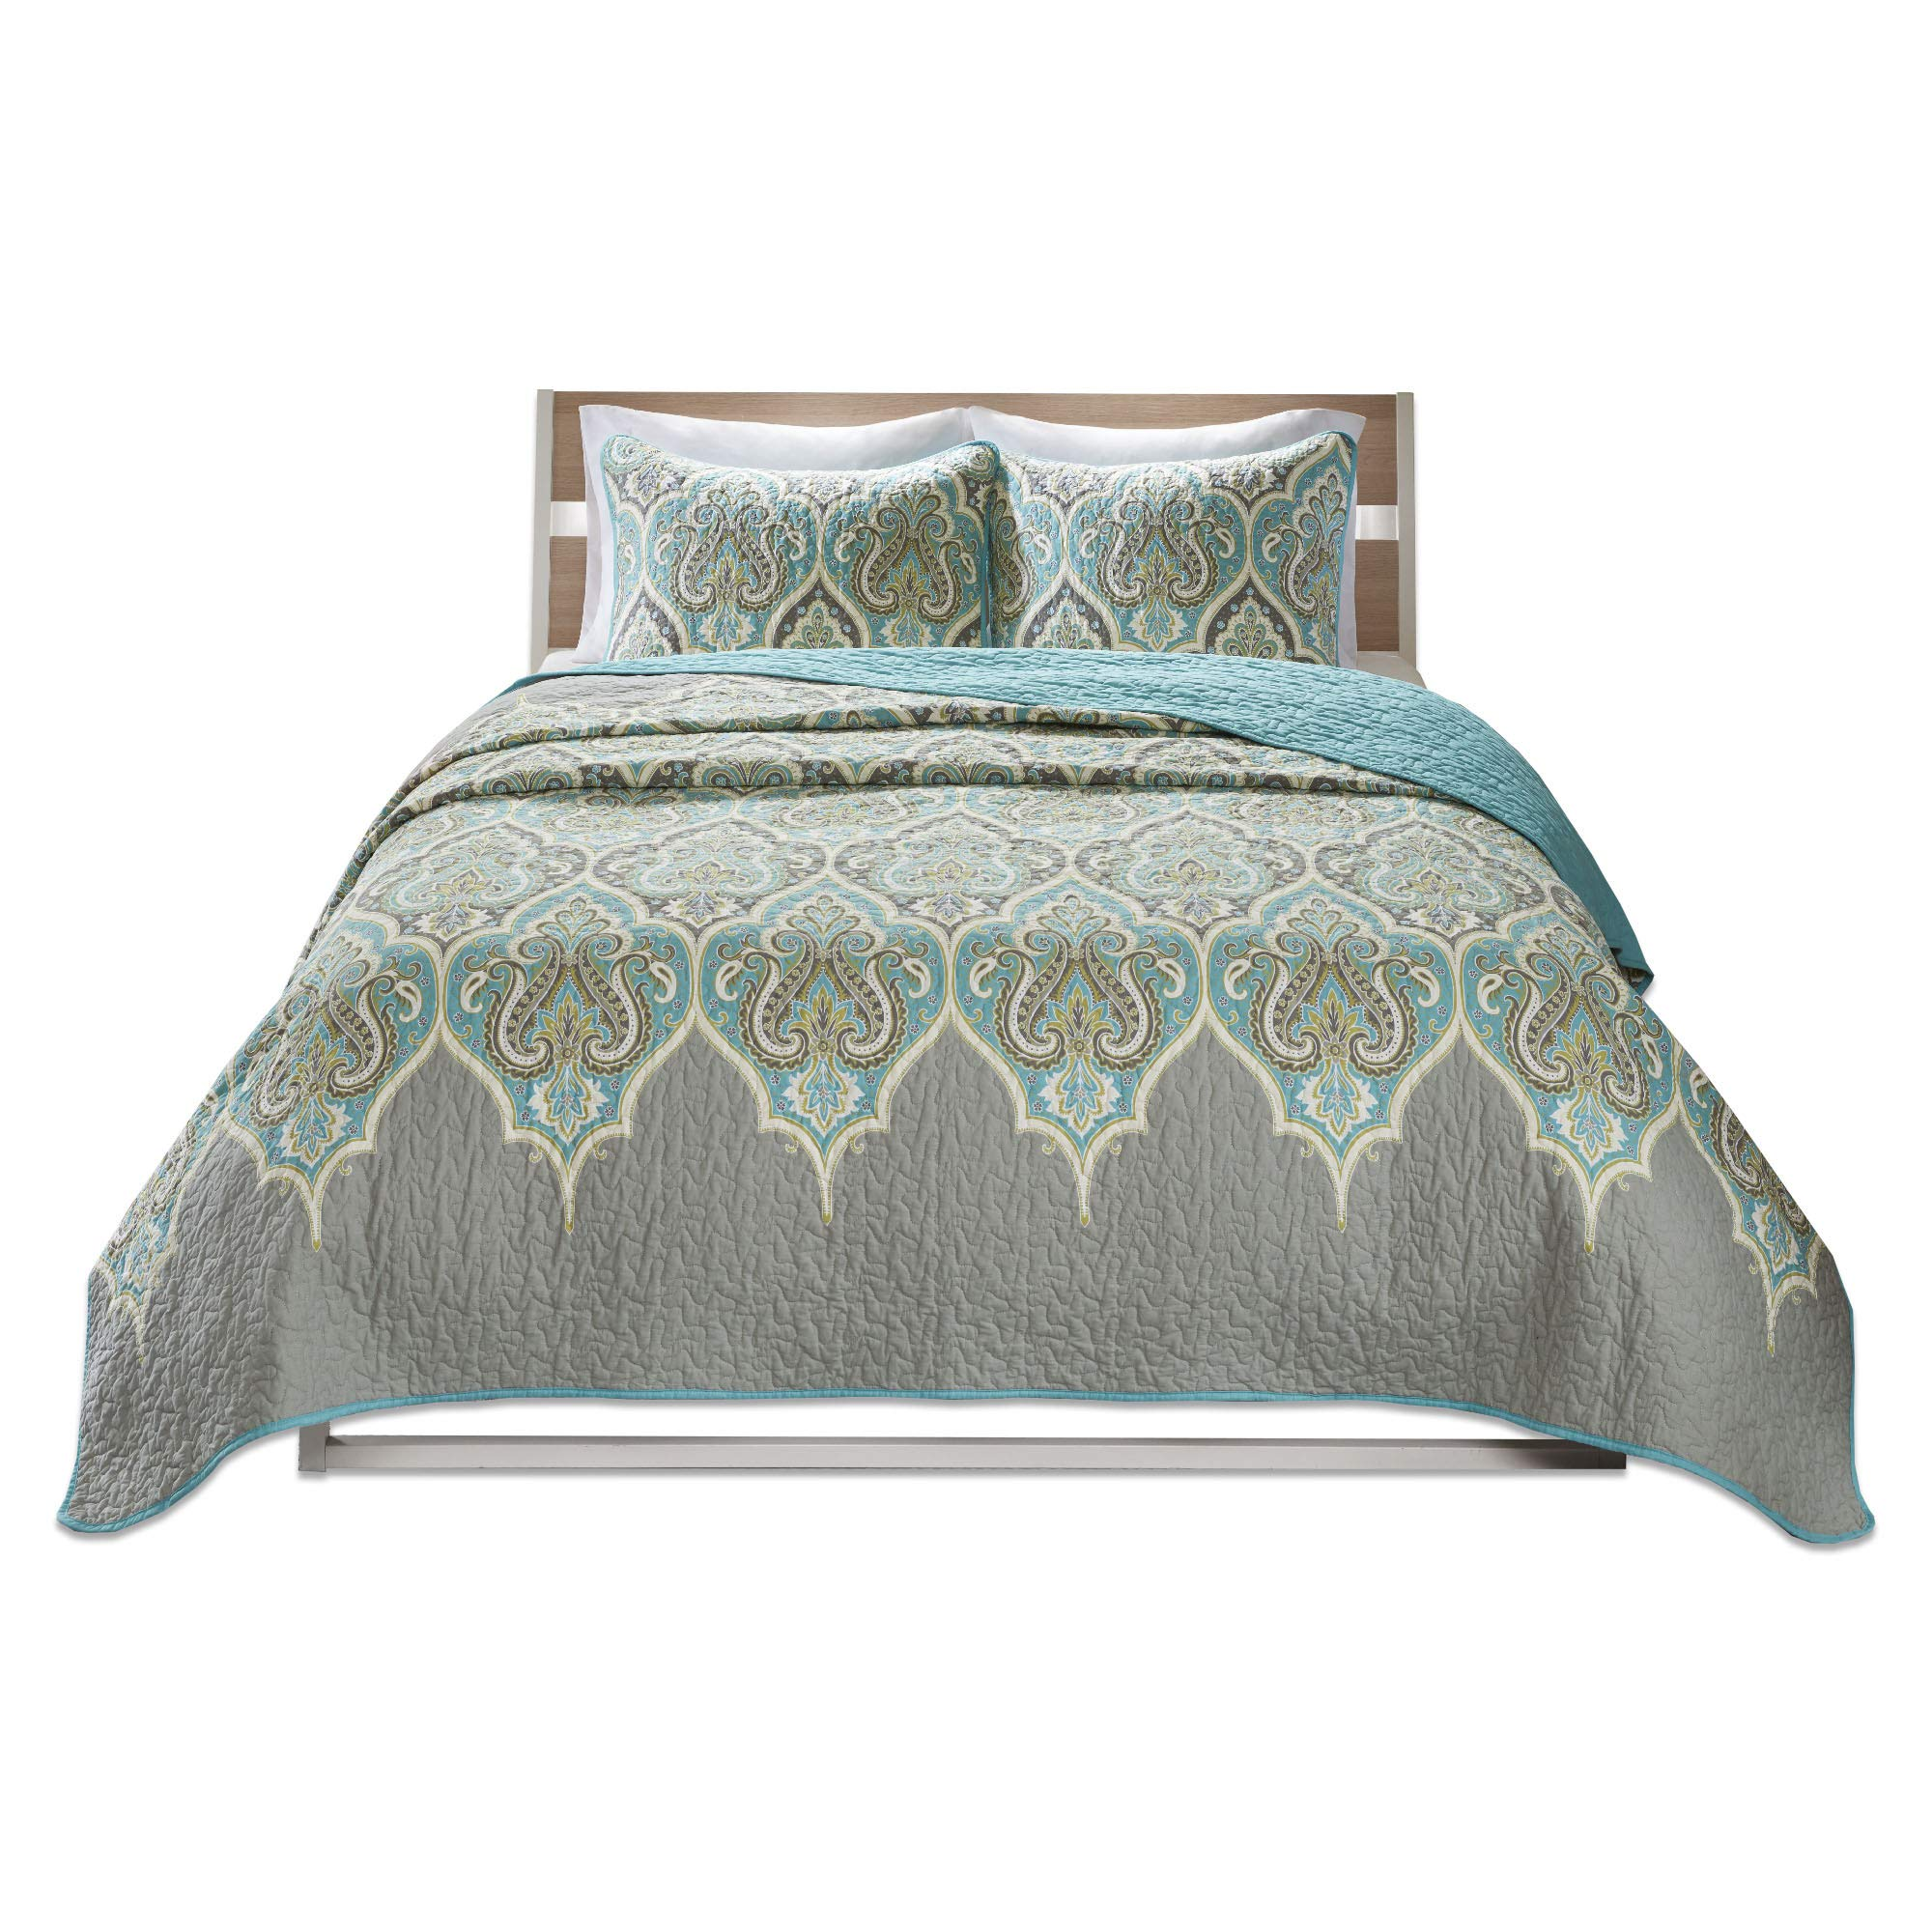 Comfort Spaces - Mona Cotton Mini Quilt Set - 3 Piece - Paisley Pattern - Teal Grey - King/California King Size, Includes 1 Quilt, 2 Shams